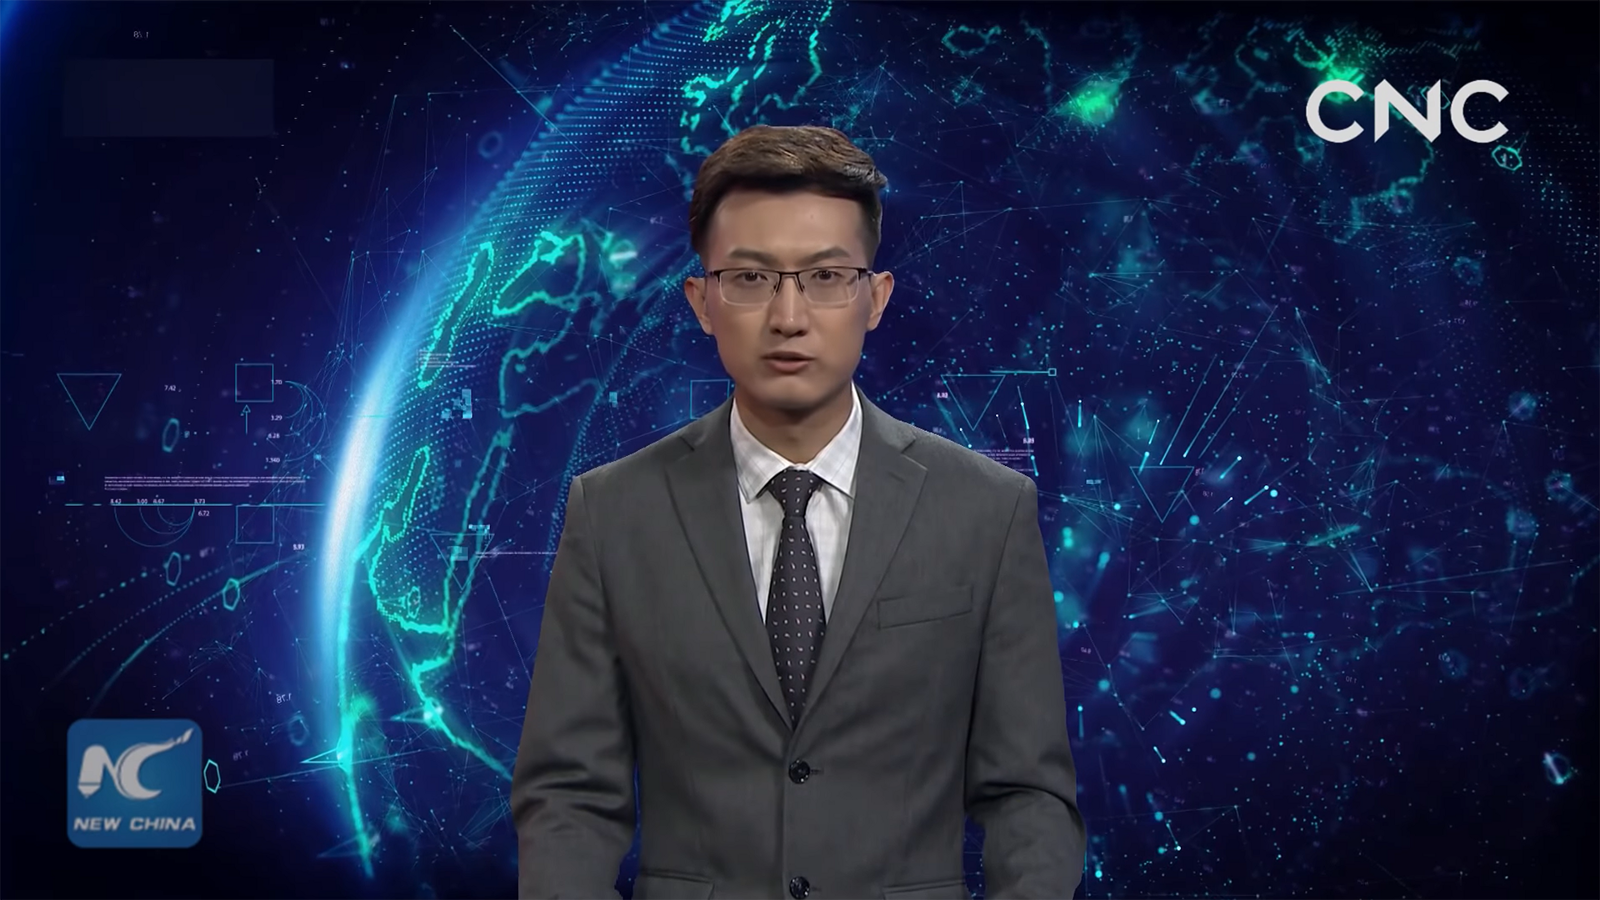 AI news anchor - a collaborative effort between ADM and Sugou Inc.